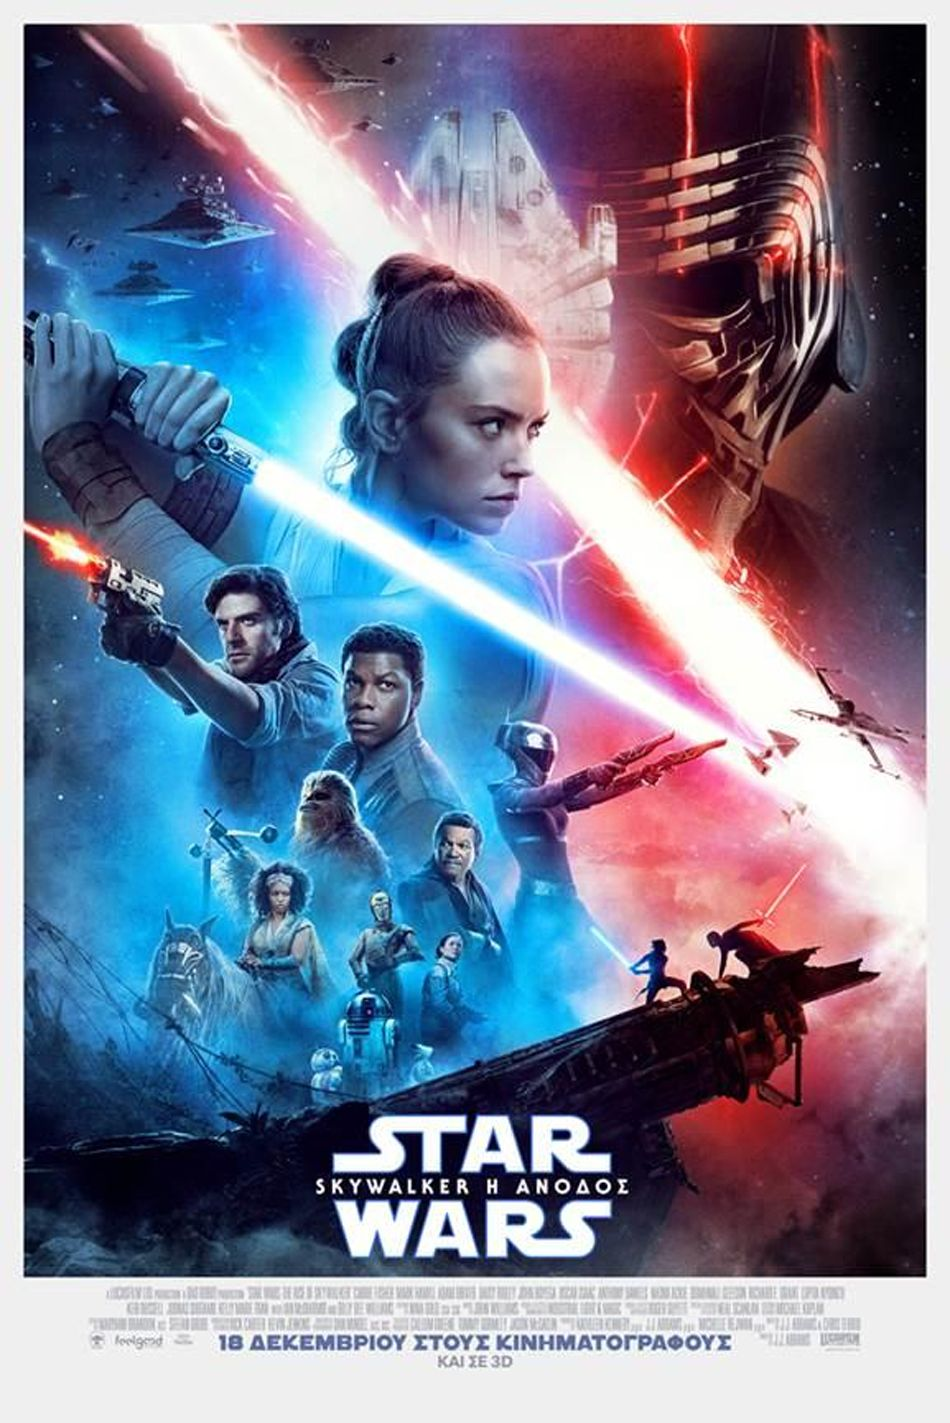 Star Wars: Skywalker Η Άνοδος (Star Wars: The Rise of Skywalker) Poster